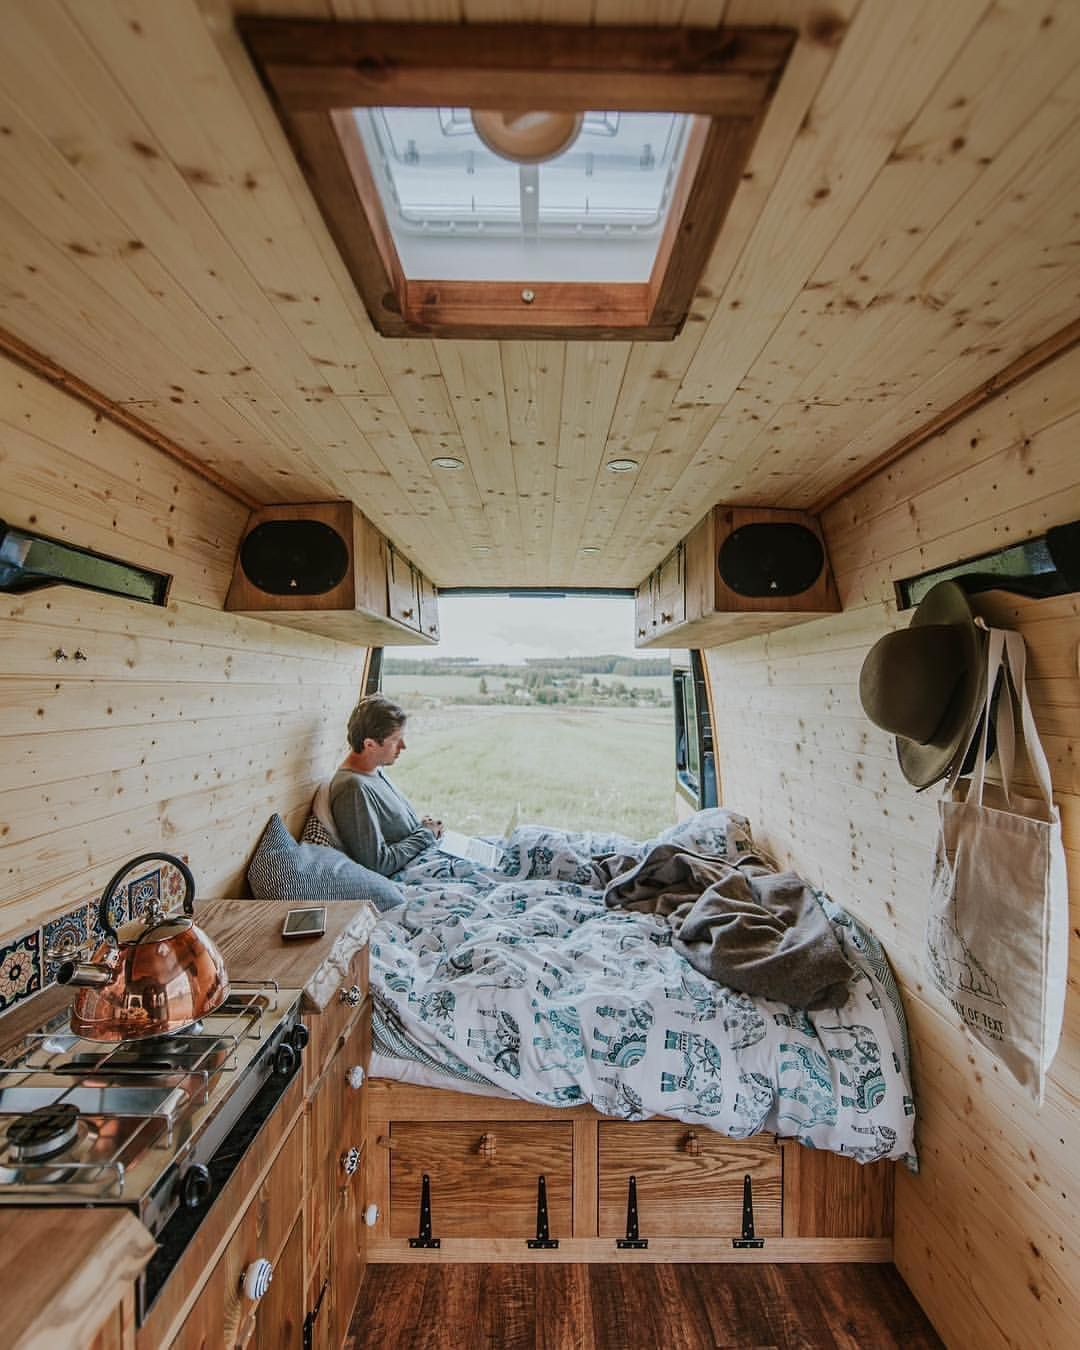 "6,597 likerklikk, 51 kommentarer – vanlife by #vanlifers (@vanlifers) på Instagram: """"Van Diesel is starting to feel more and more like home."" Vanlifer: @kimmexplores #vanlifers"""